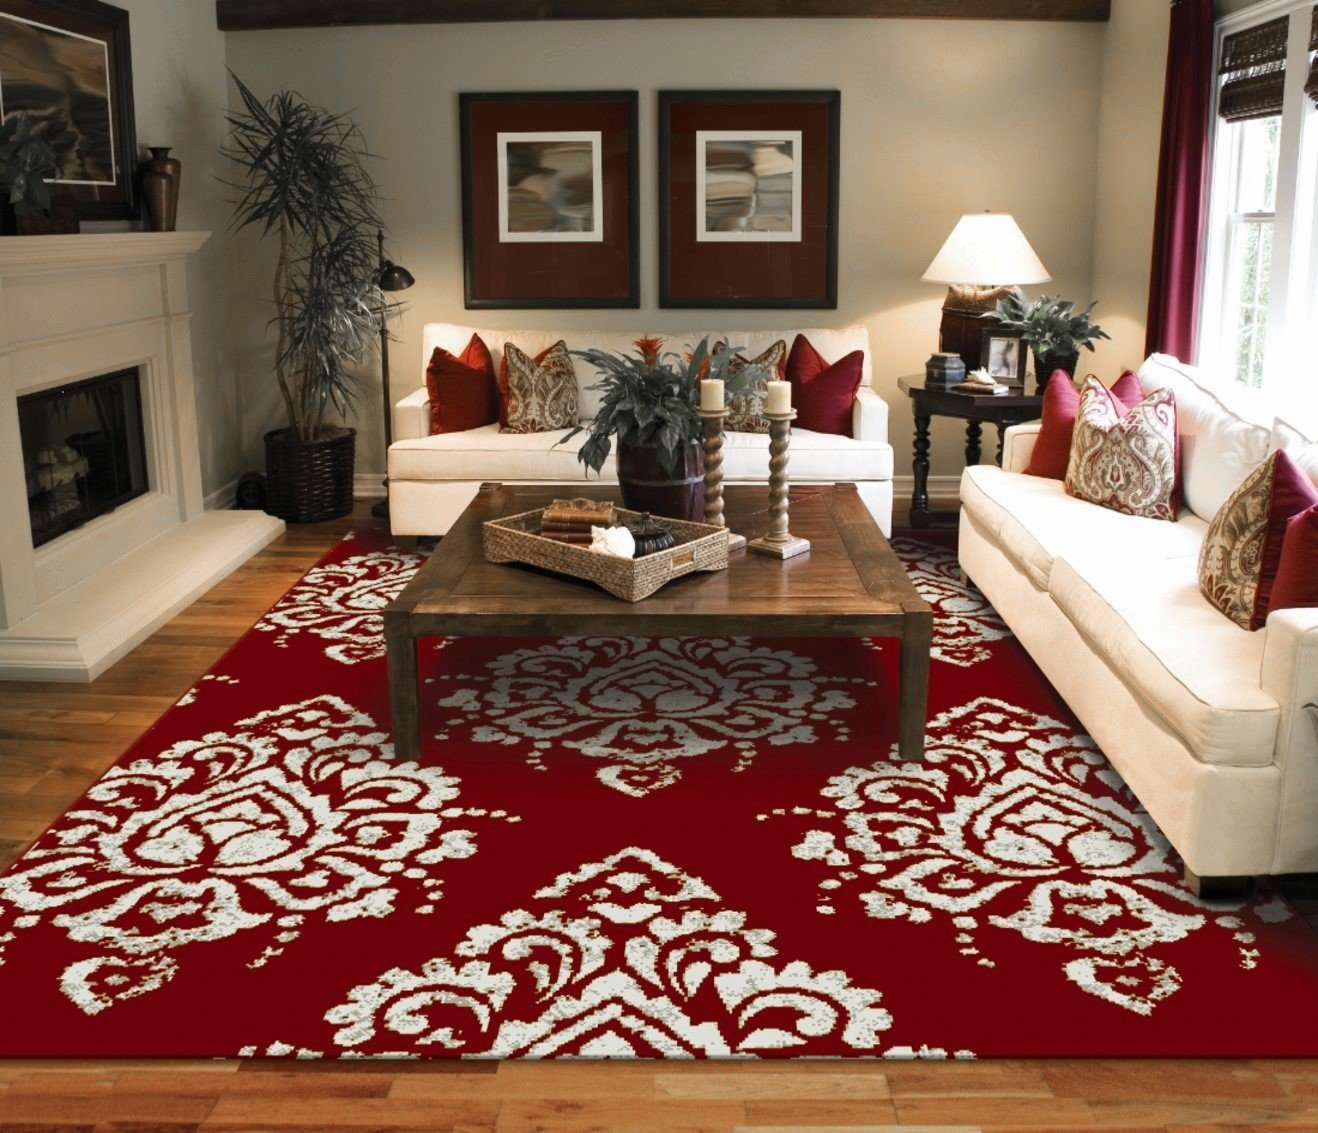 Fabulous Amazon.com: New Modern Rugs For Living Room Red & Cream Flower  RW76